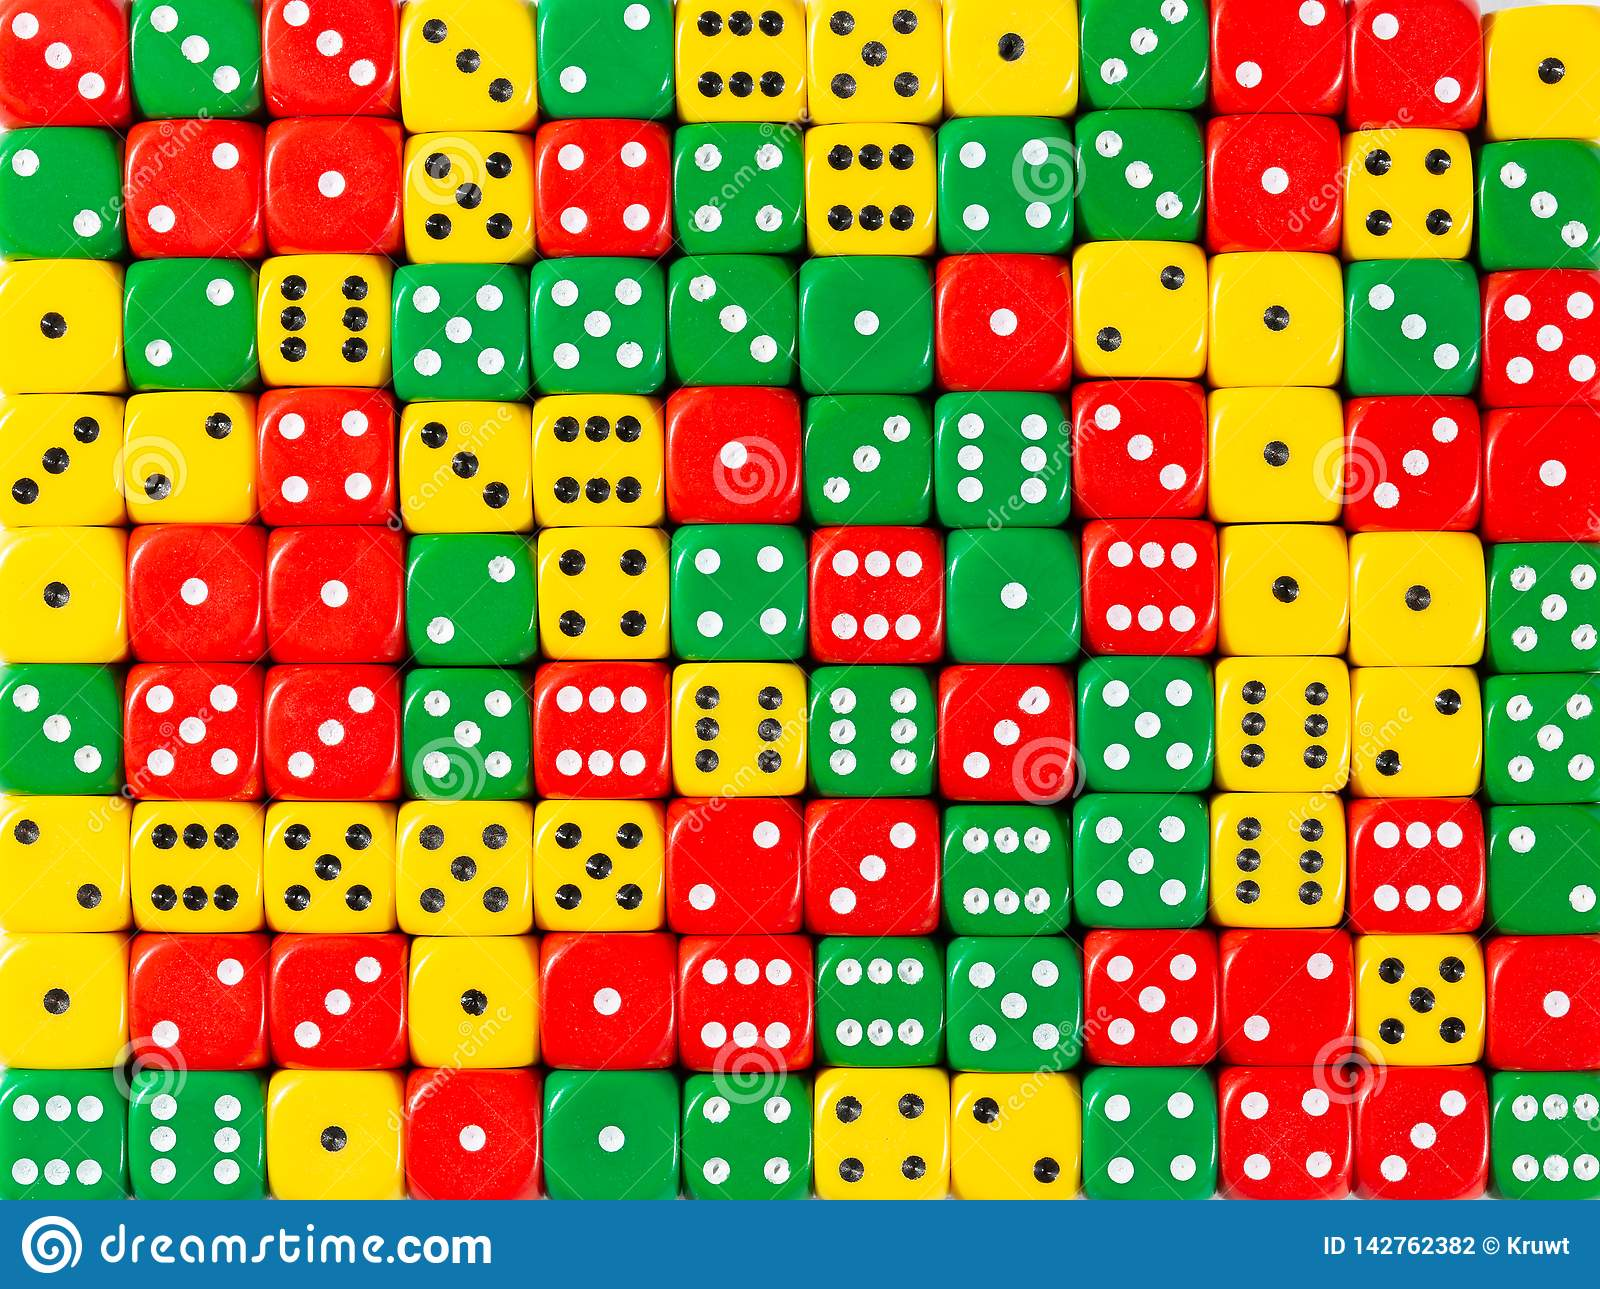 Background pattern of random ordered red, green and yellow dices